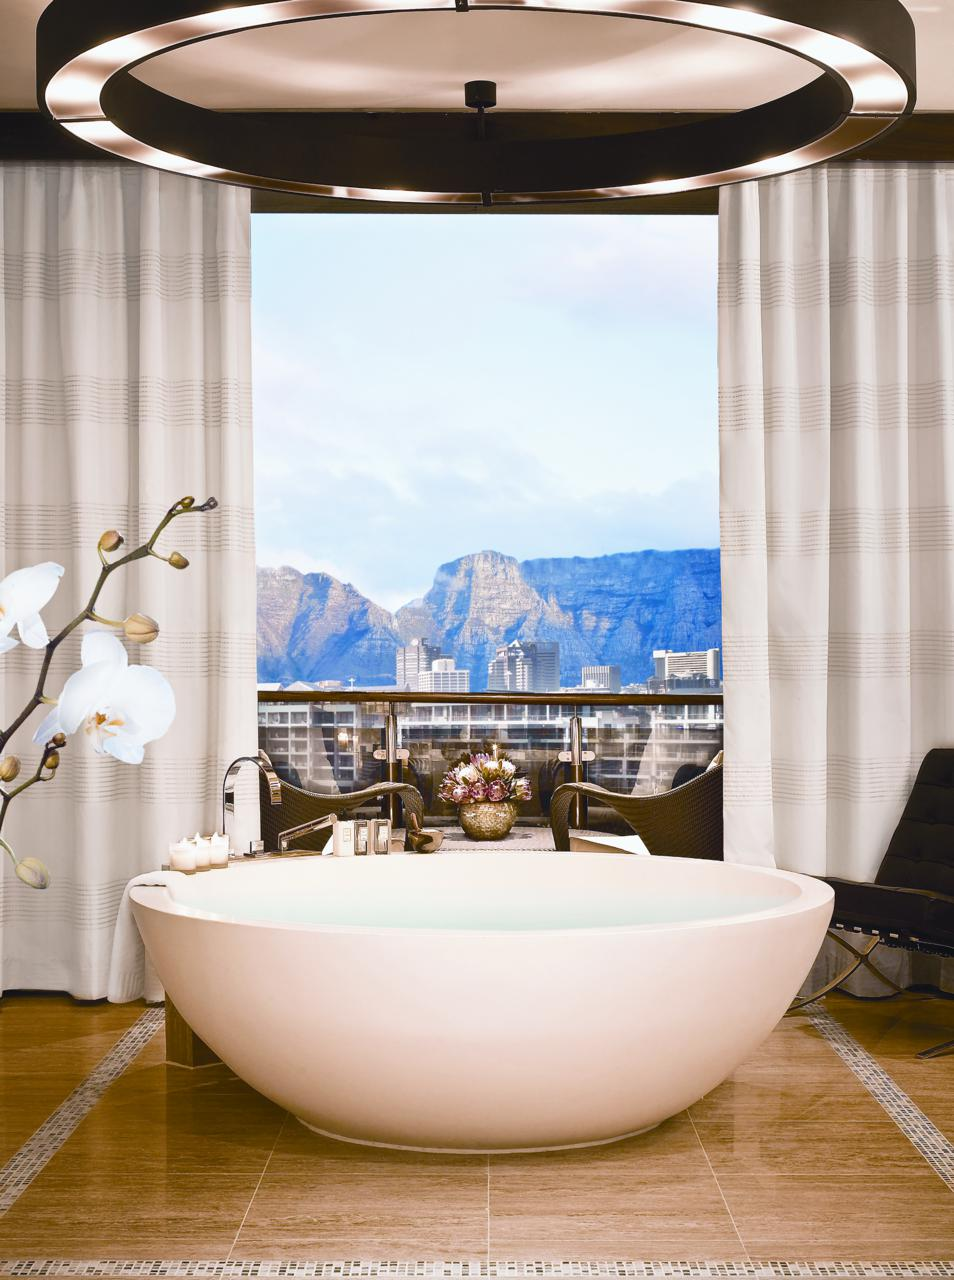 OneOnly Cape Town Table Mountain Suite Bathroom1.TIF.jpeg